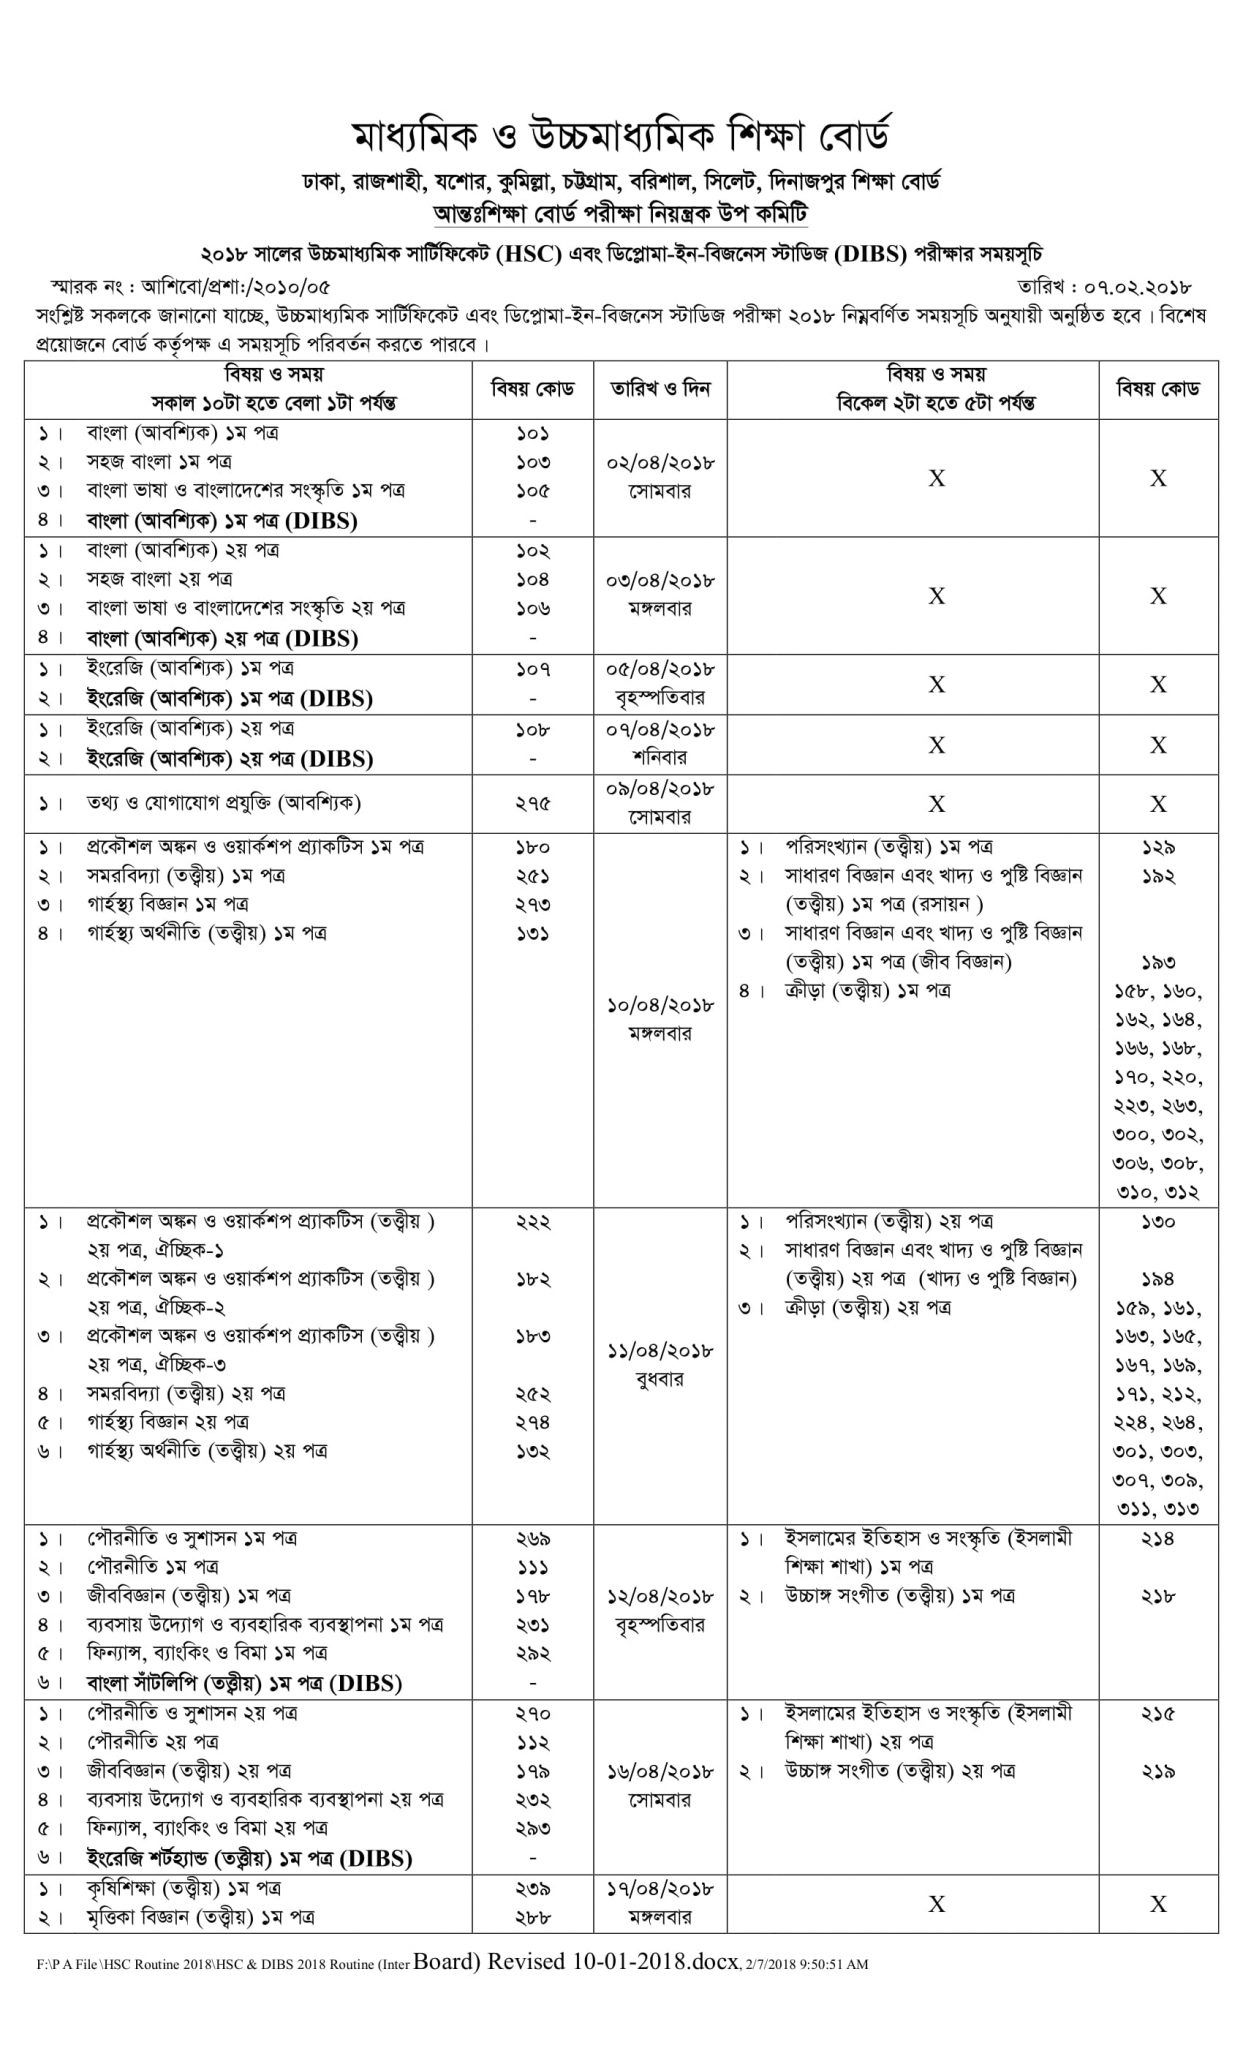 Hsc Routine 2020 All Education Board Routine Exam Exam Results Job Circular